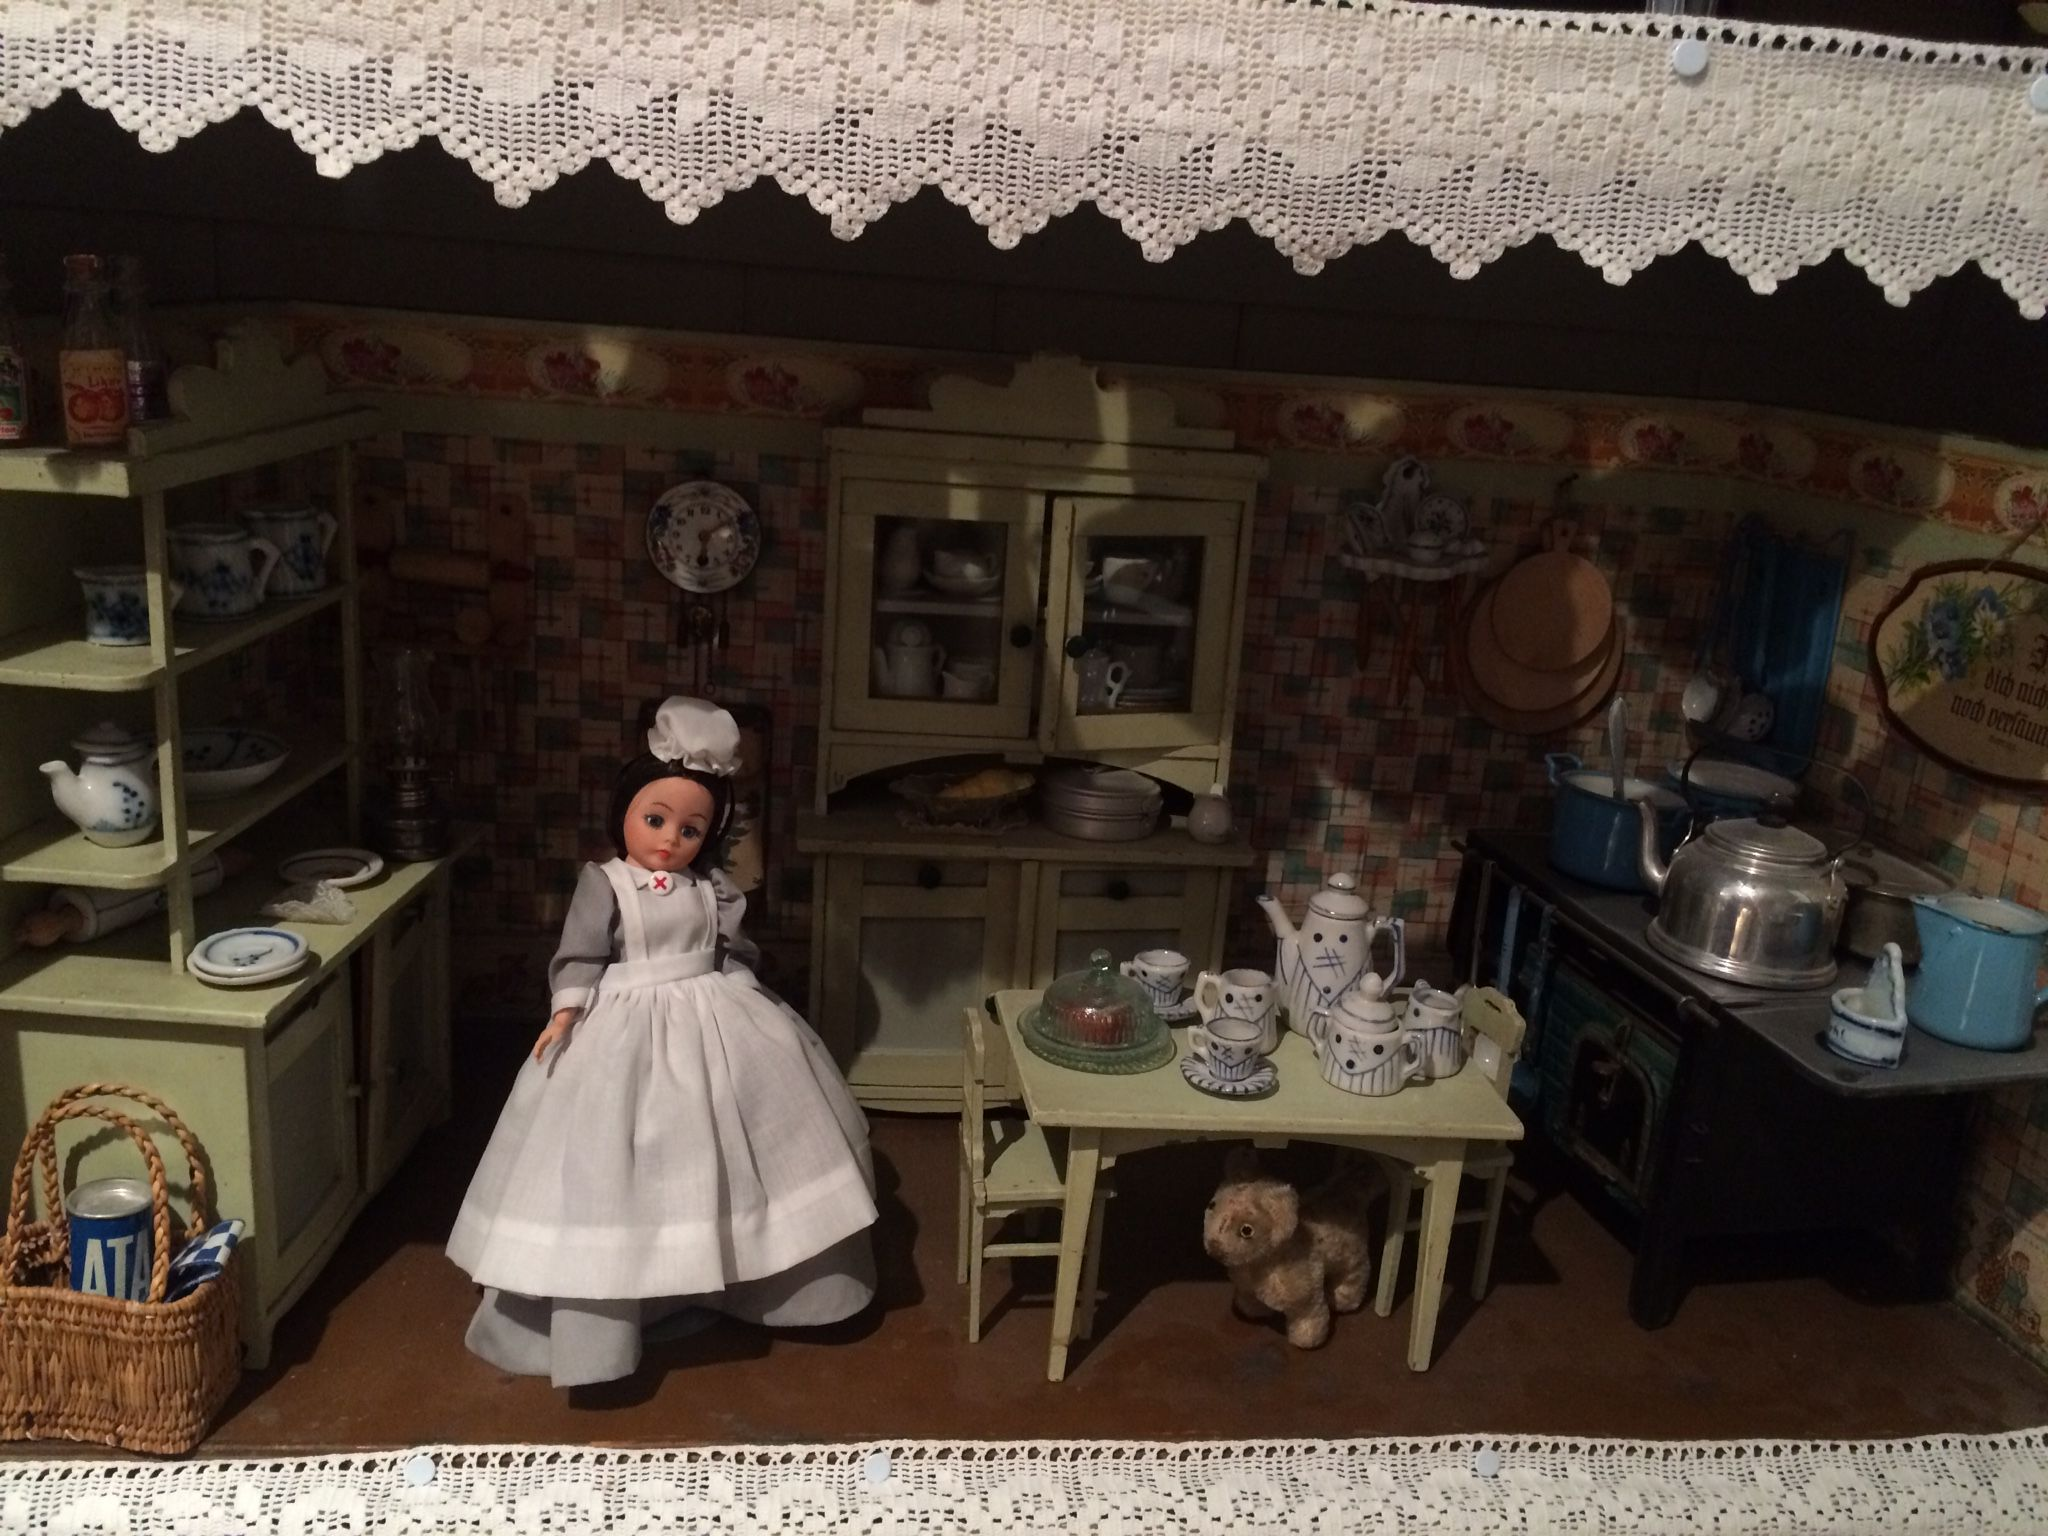 Puppenstube: antique doll kitchen with stove